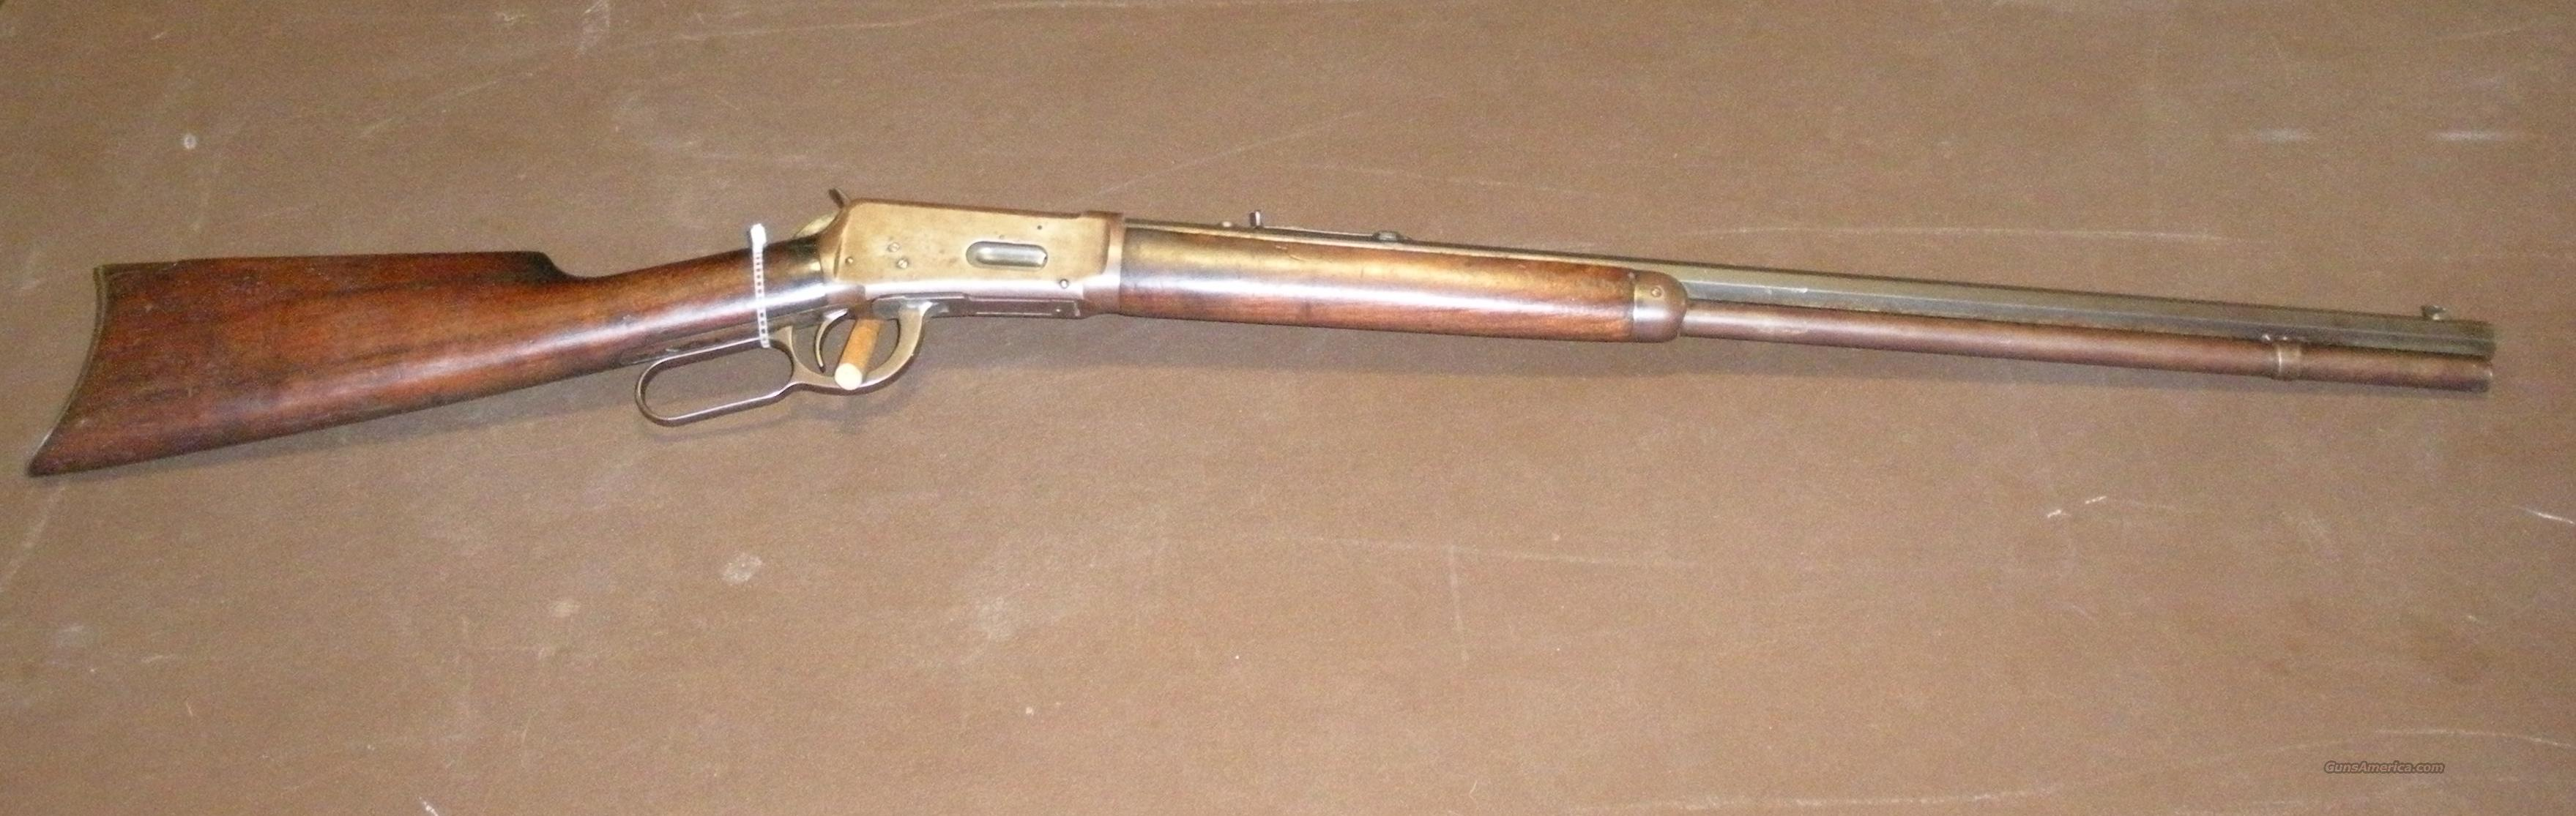 WINCHESTER MODEL 94 30 WCF LEVER ACTION BUILD IN 1917